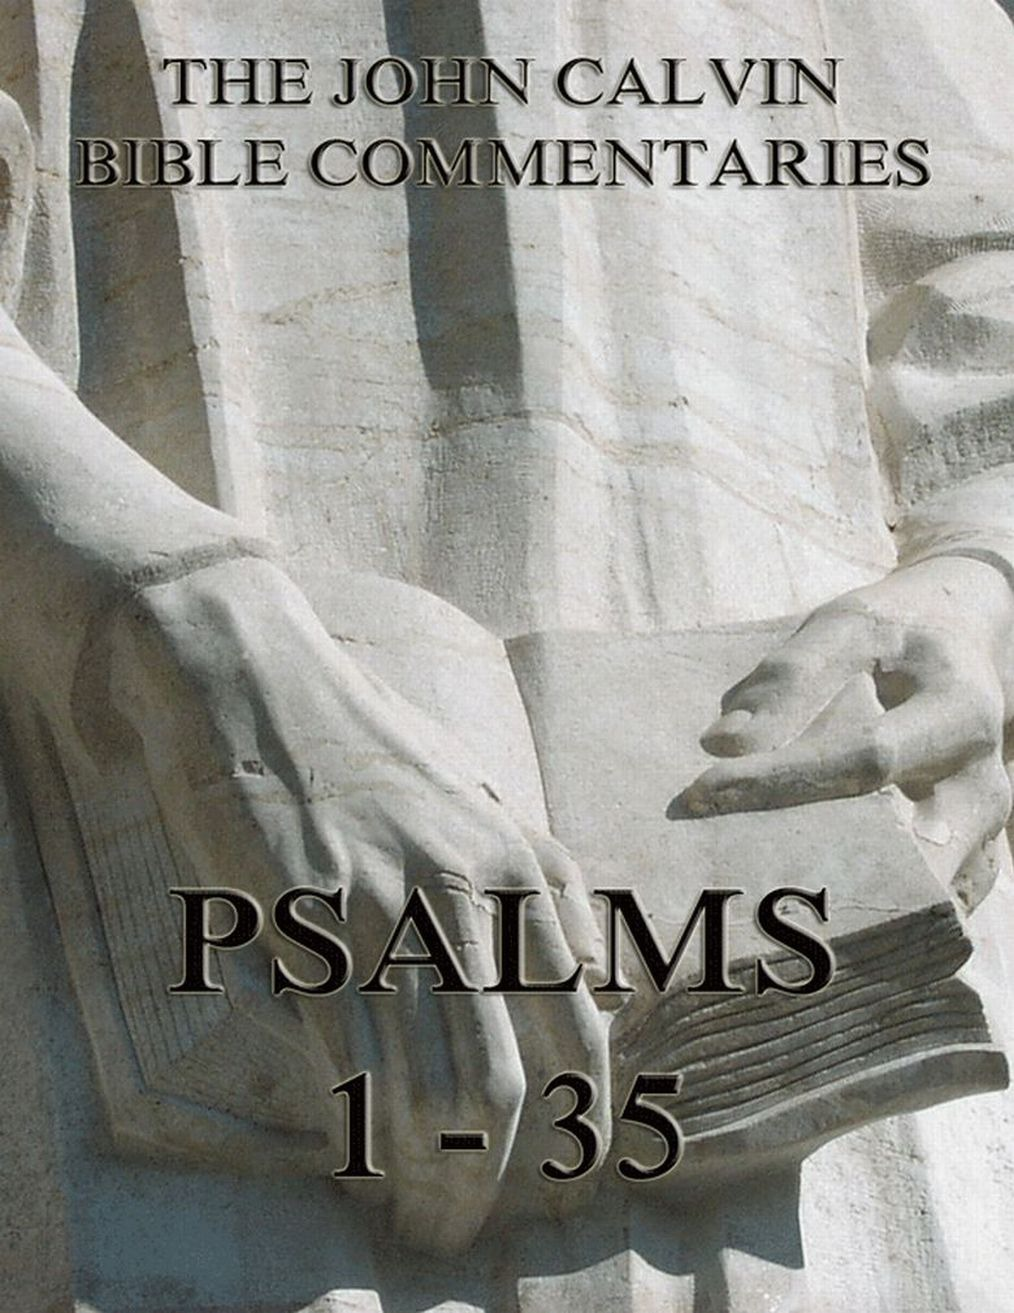 John Calvin John Calvin's Commentaries On The Psalms 1 - 35 john wesley wesley s notes on the bible the old testament first samuel psalms